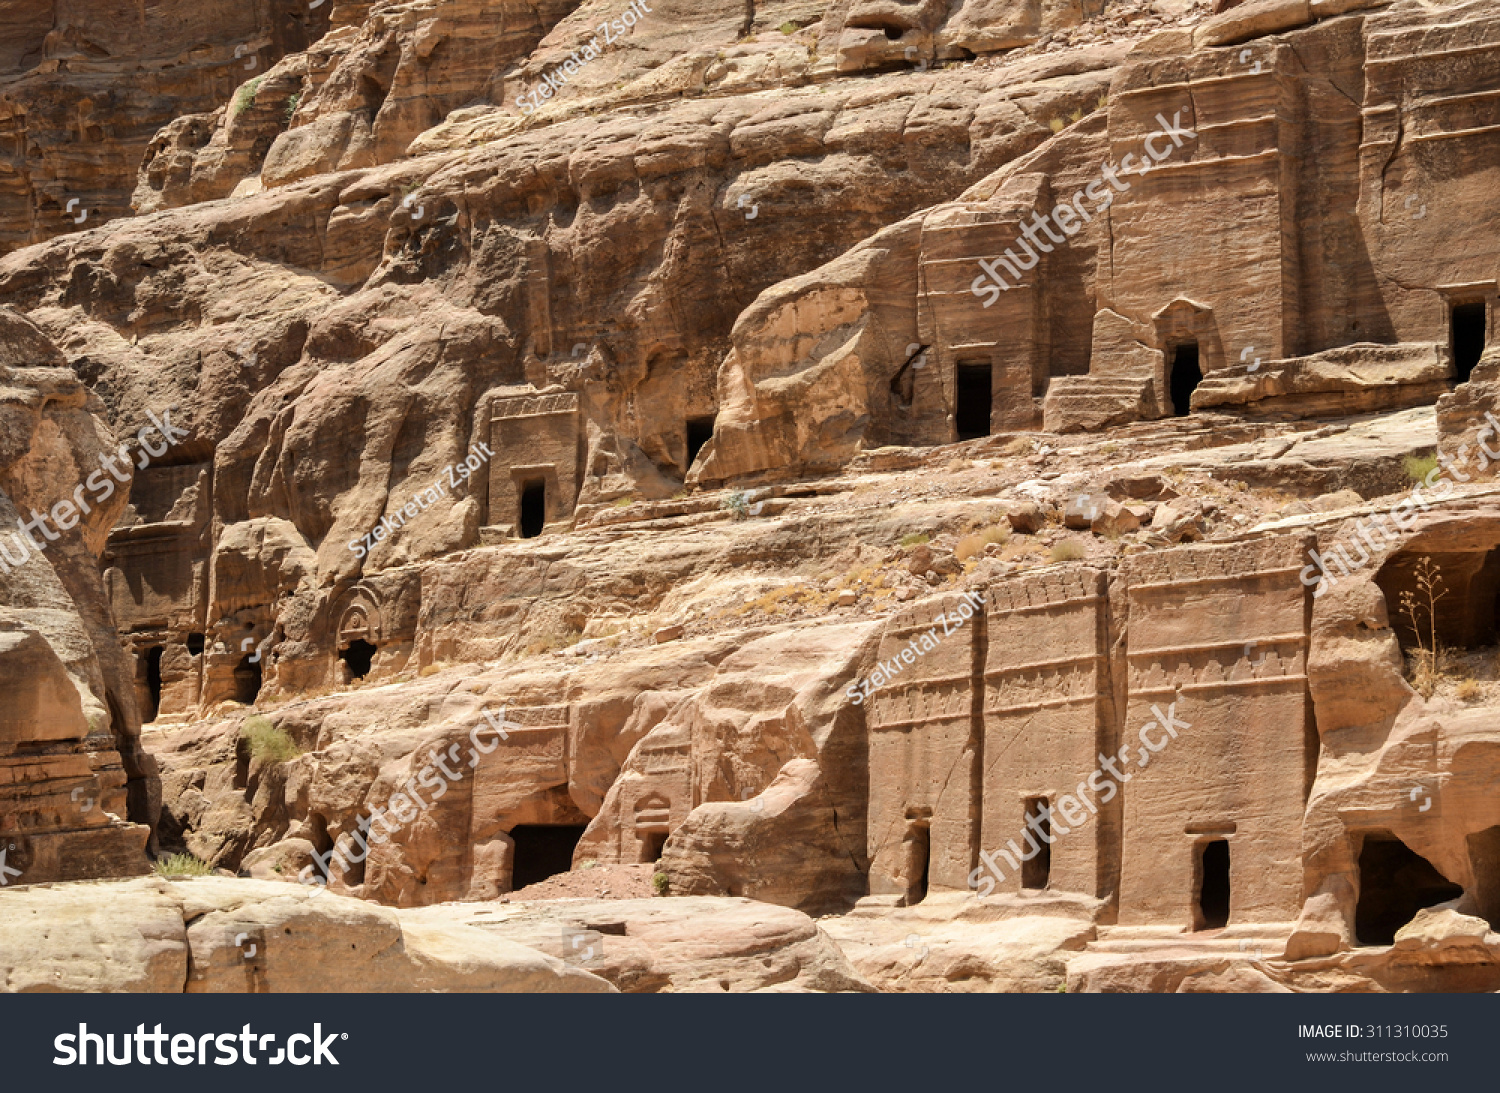 The ancient city, the capital of Idumea (Edom), later the capital of Nabatean 88